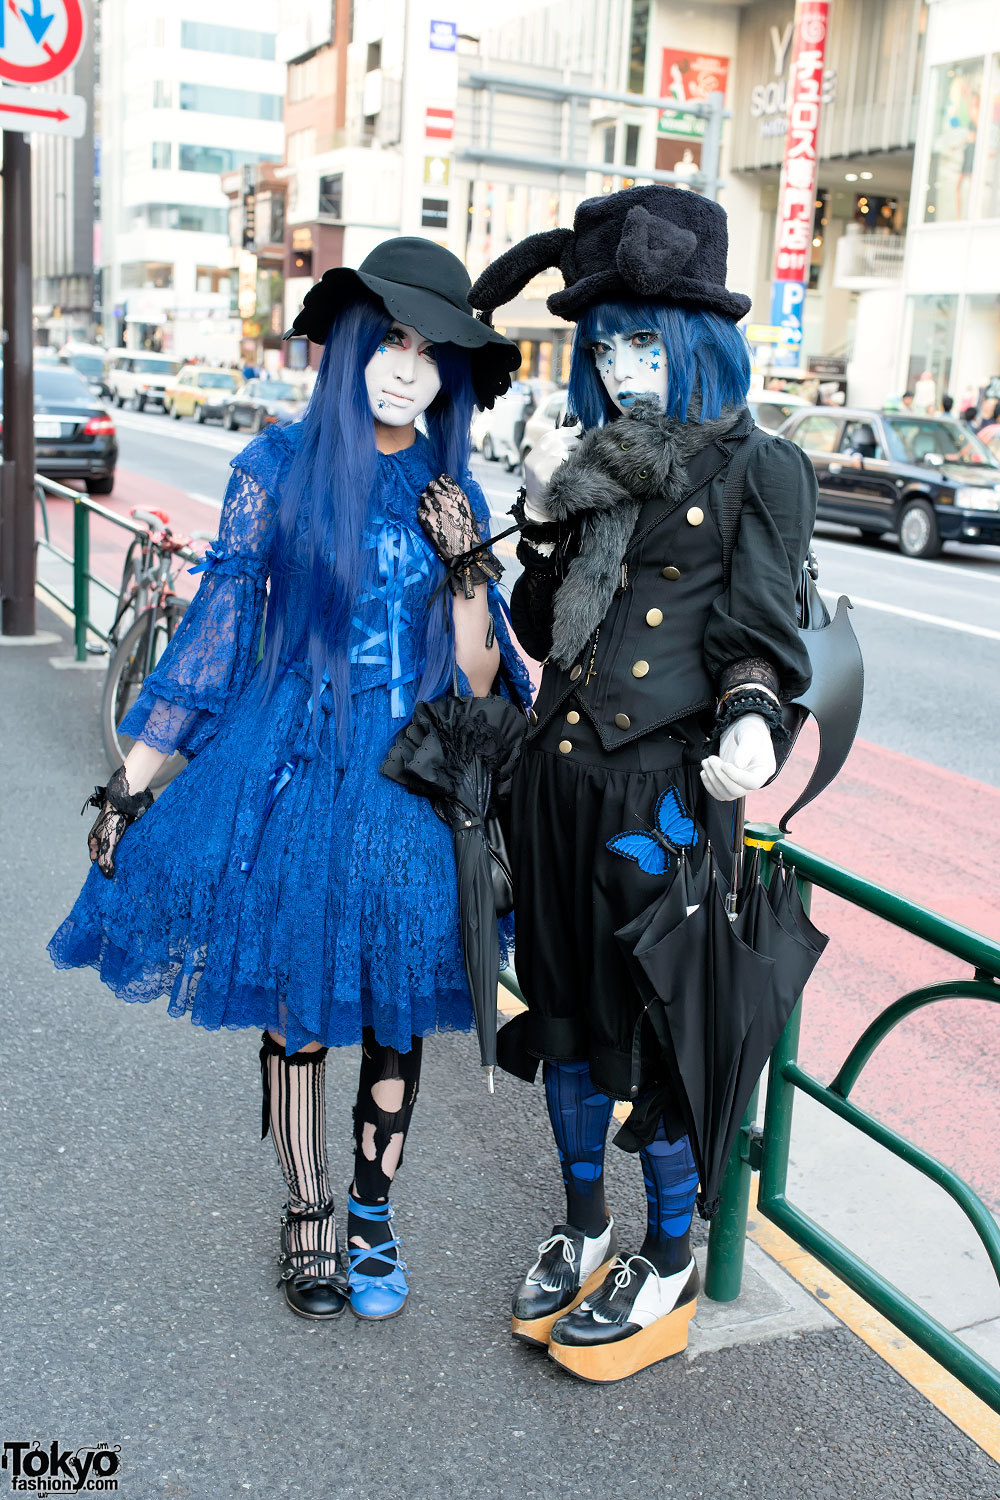 Harajuku Shironuri in Blue Gothic Fashion